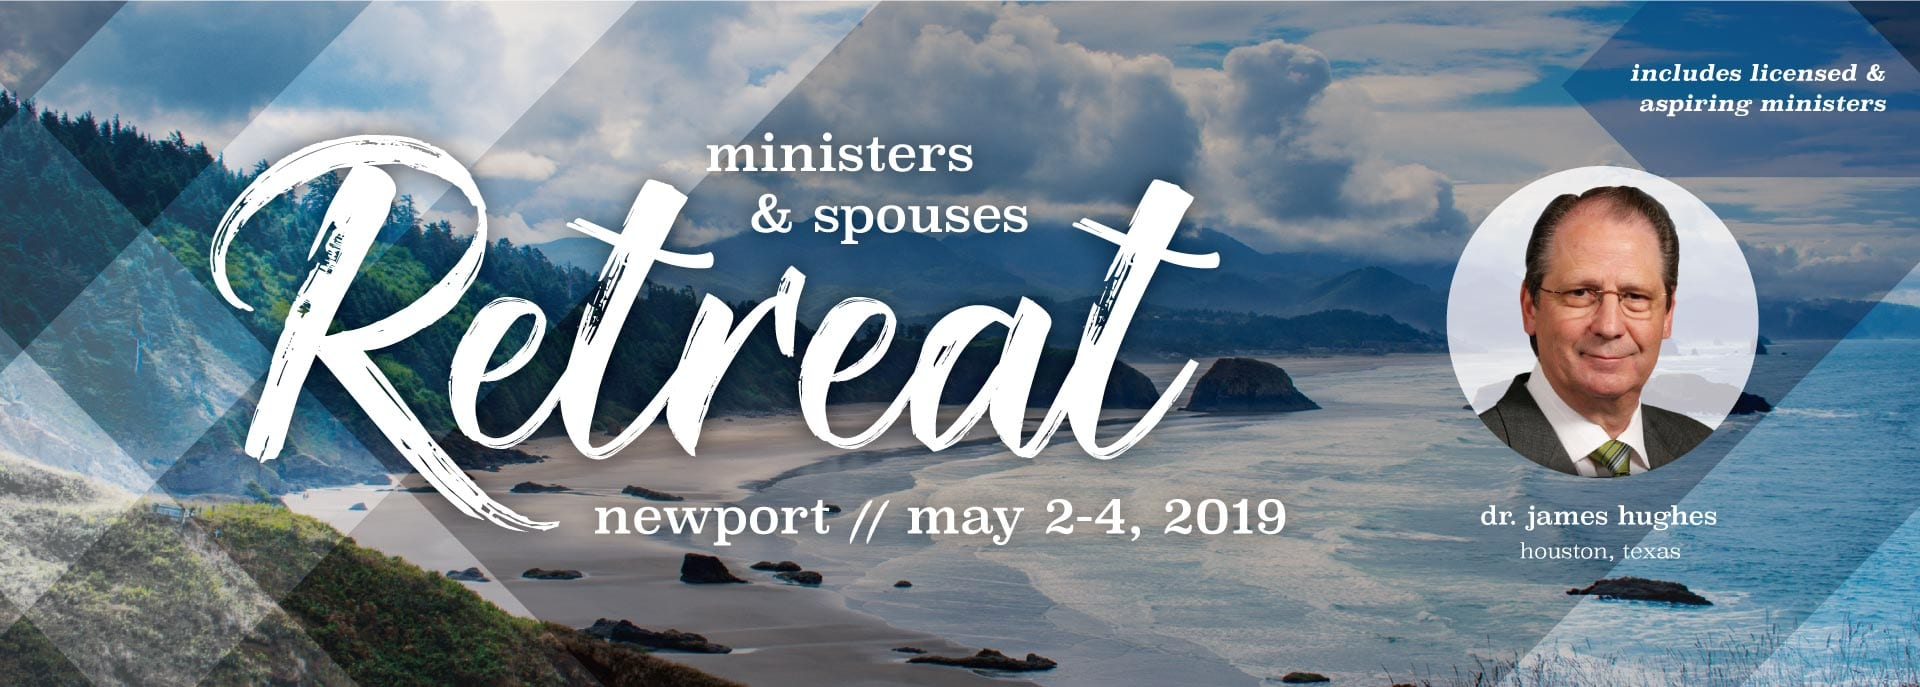 Ministers & Spouses Retreat 2019